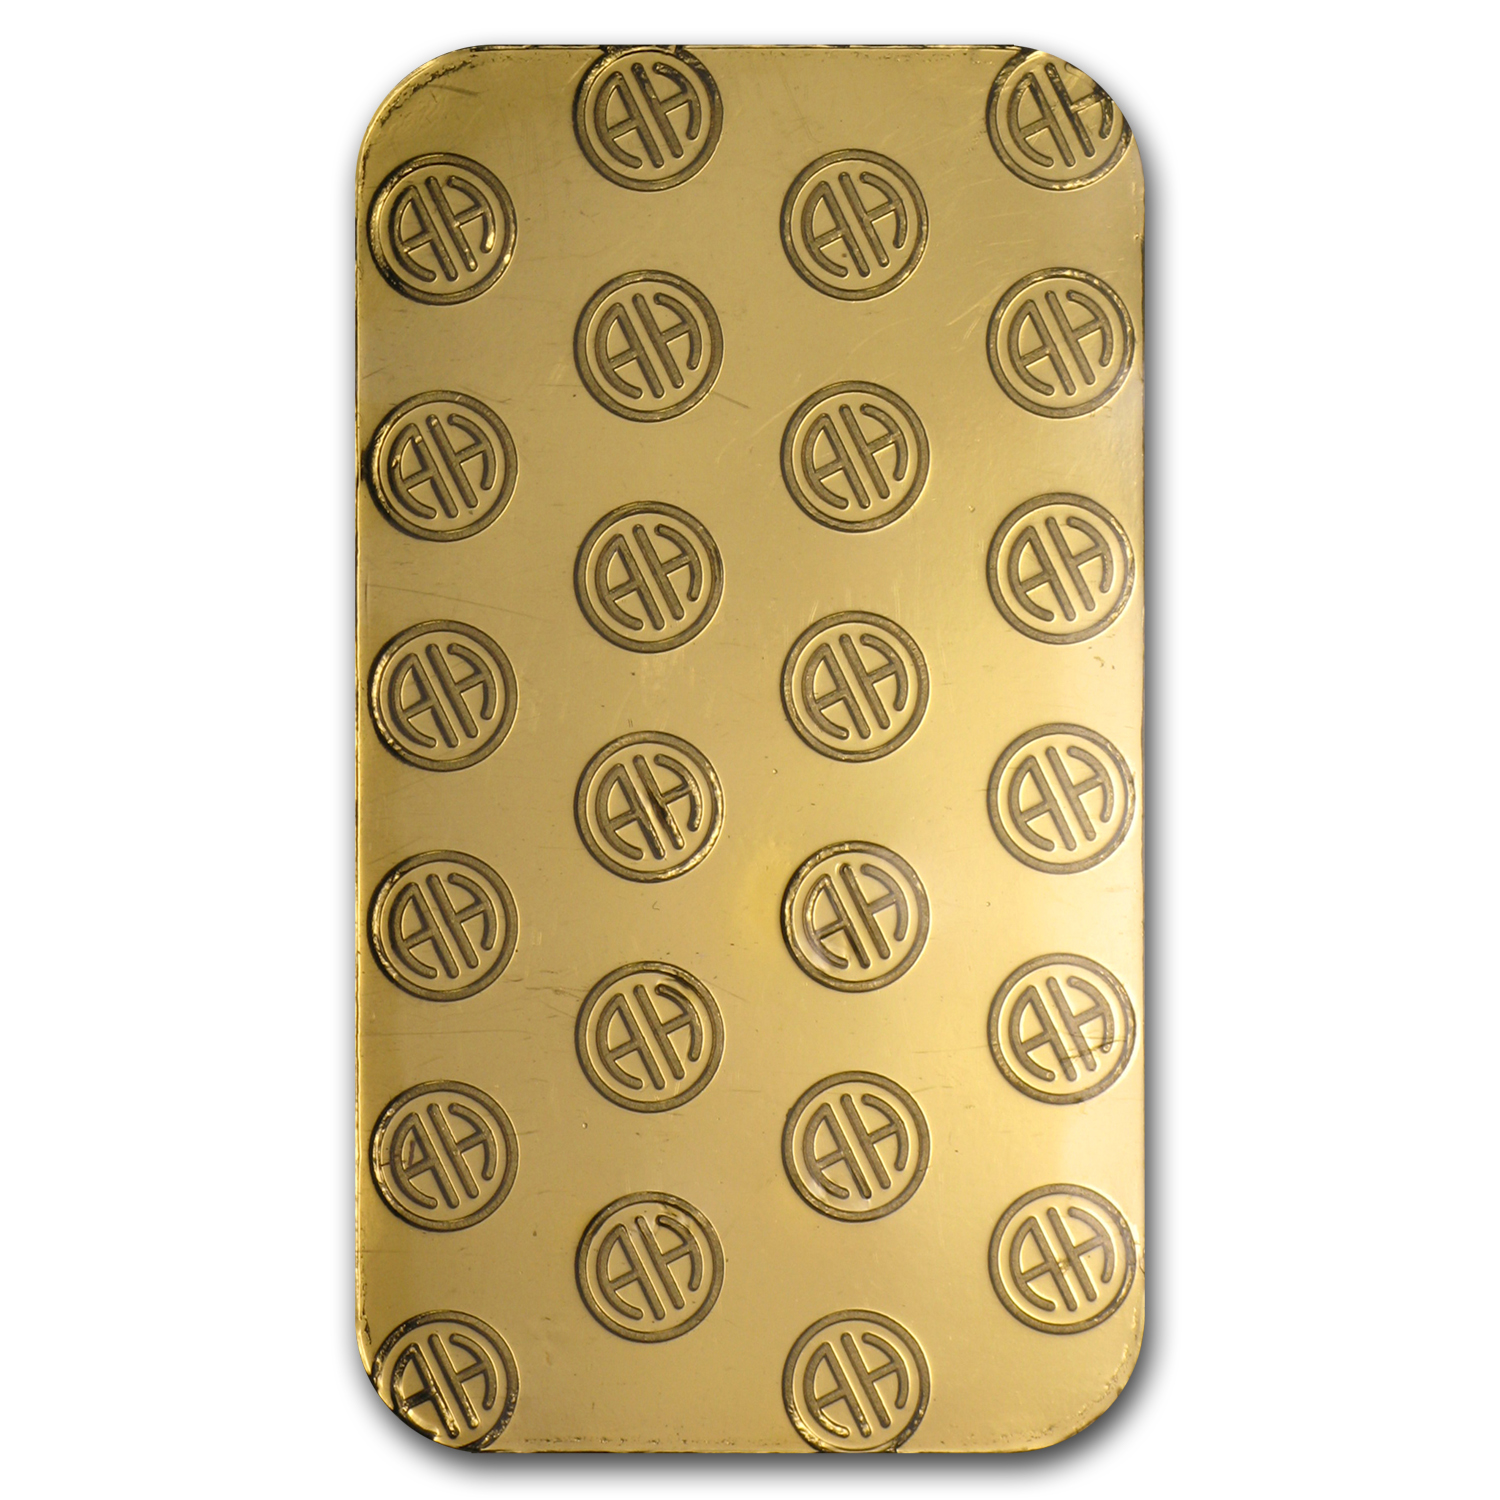 1 oz Gold Bar - Heraeus (New)